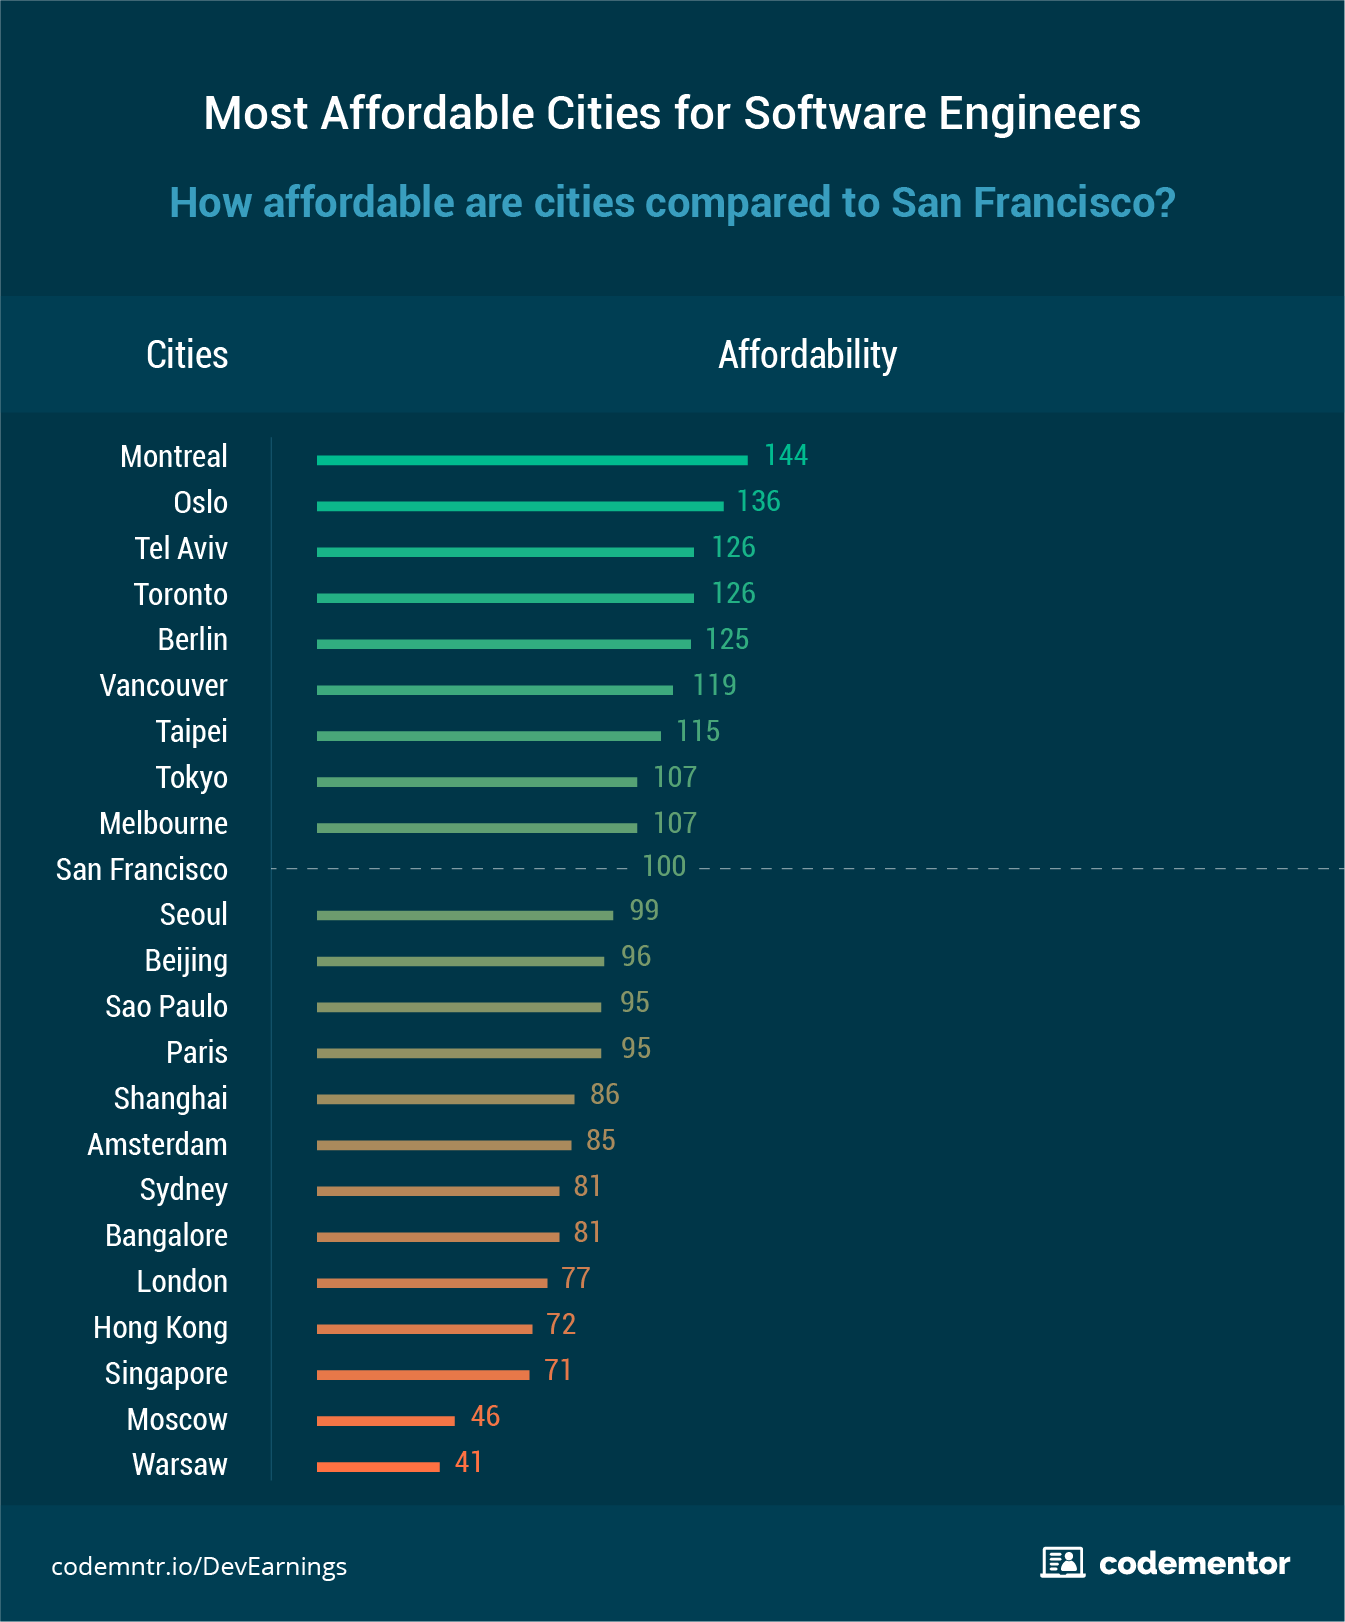 Software systems engineering salary - Most Affordable Cities For Developers